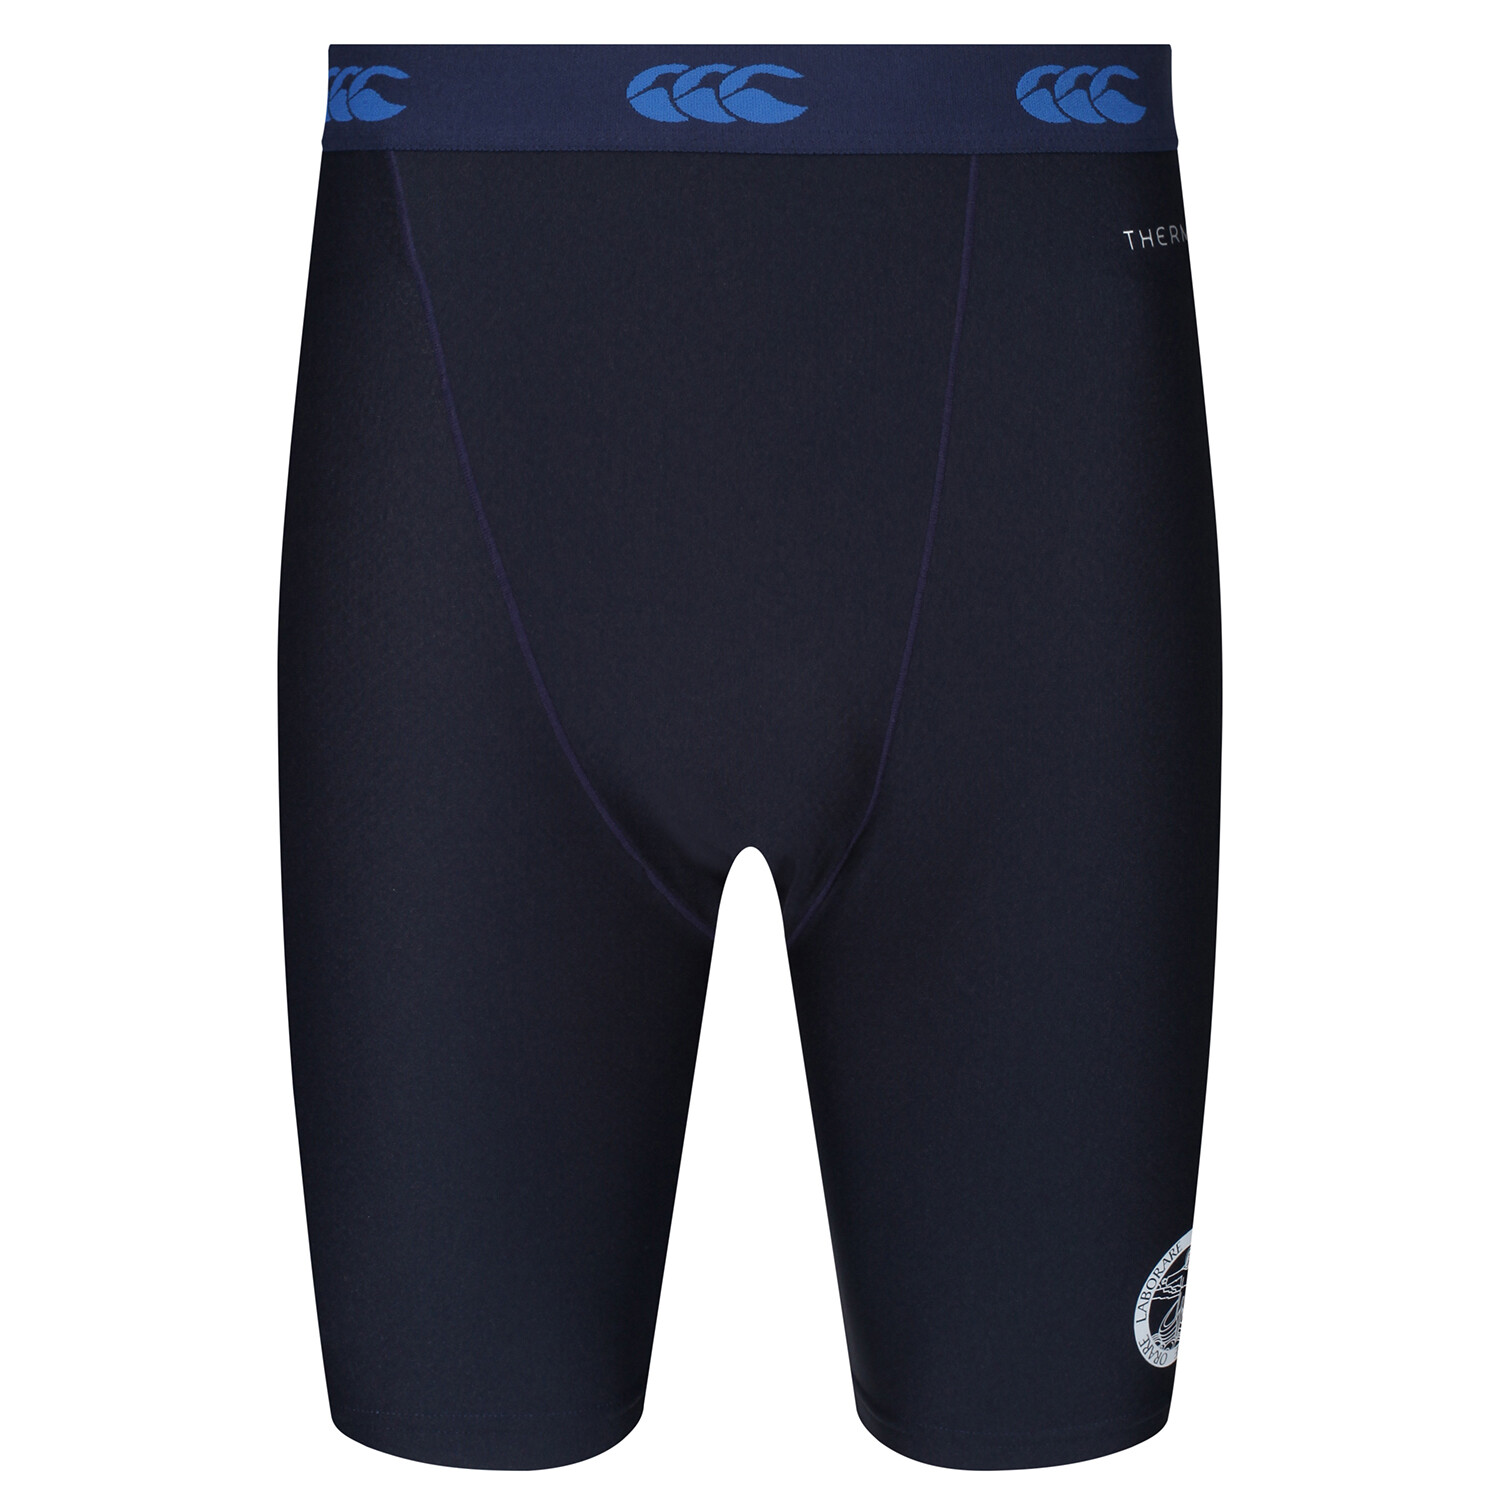 St Columba's School PE Baselayer Shorts (J5-S6)